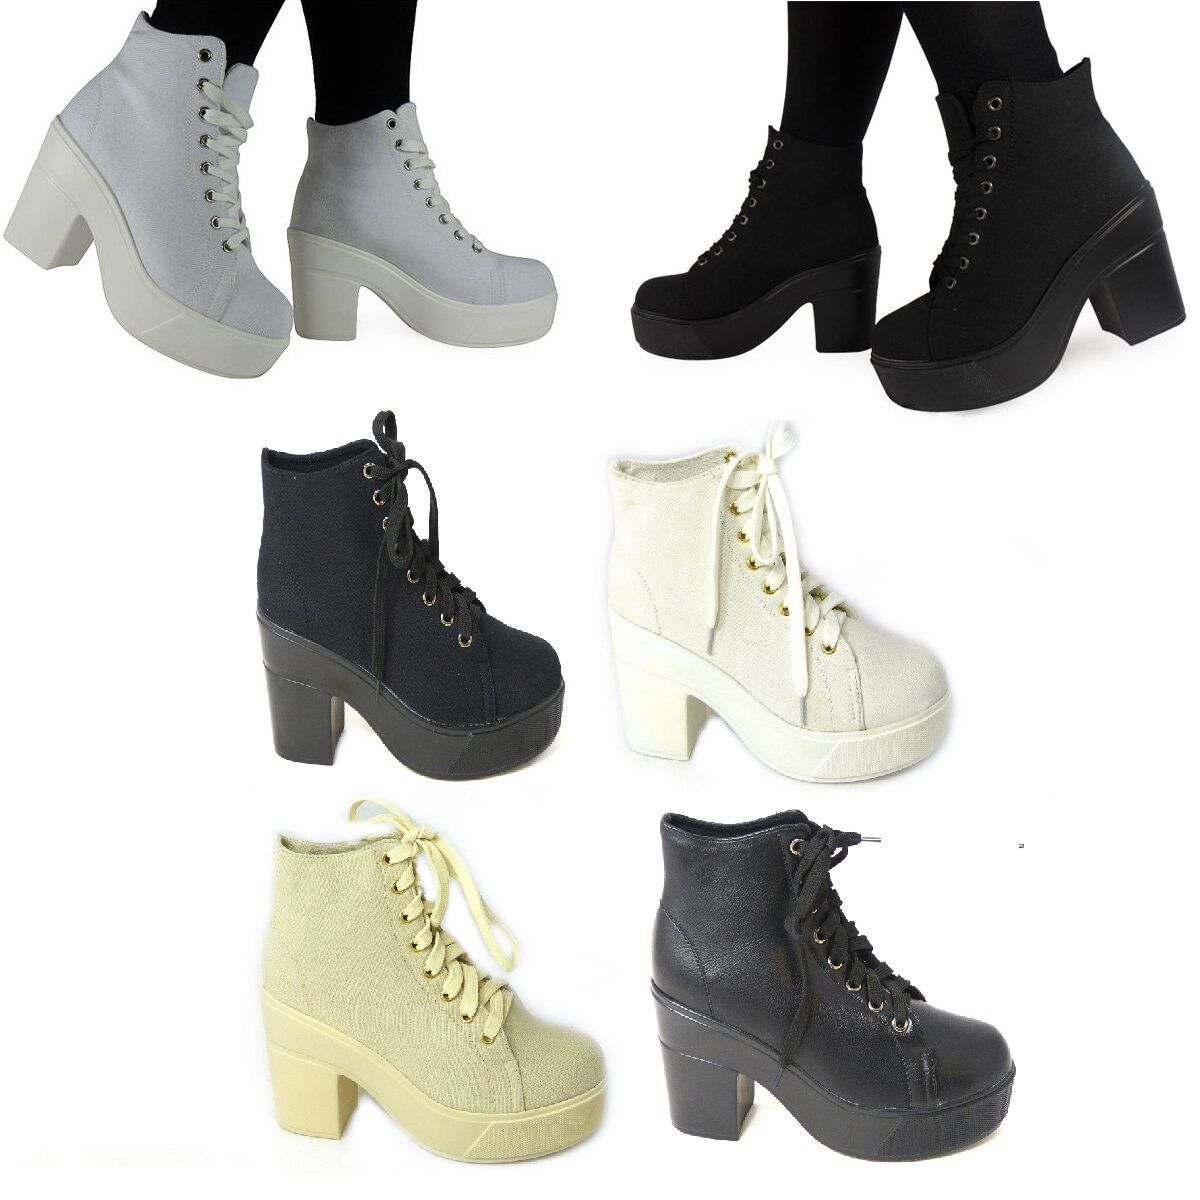 NEW WOMENS LADIES ANKLE LACE UP PLATFORM HIGH BLOCK HEEL WORK SHOES BOOTS SIZE